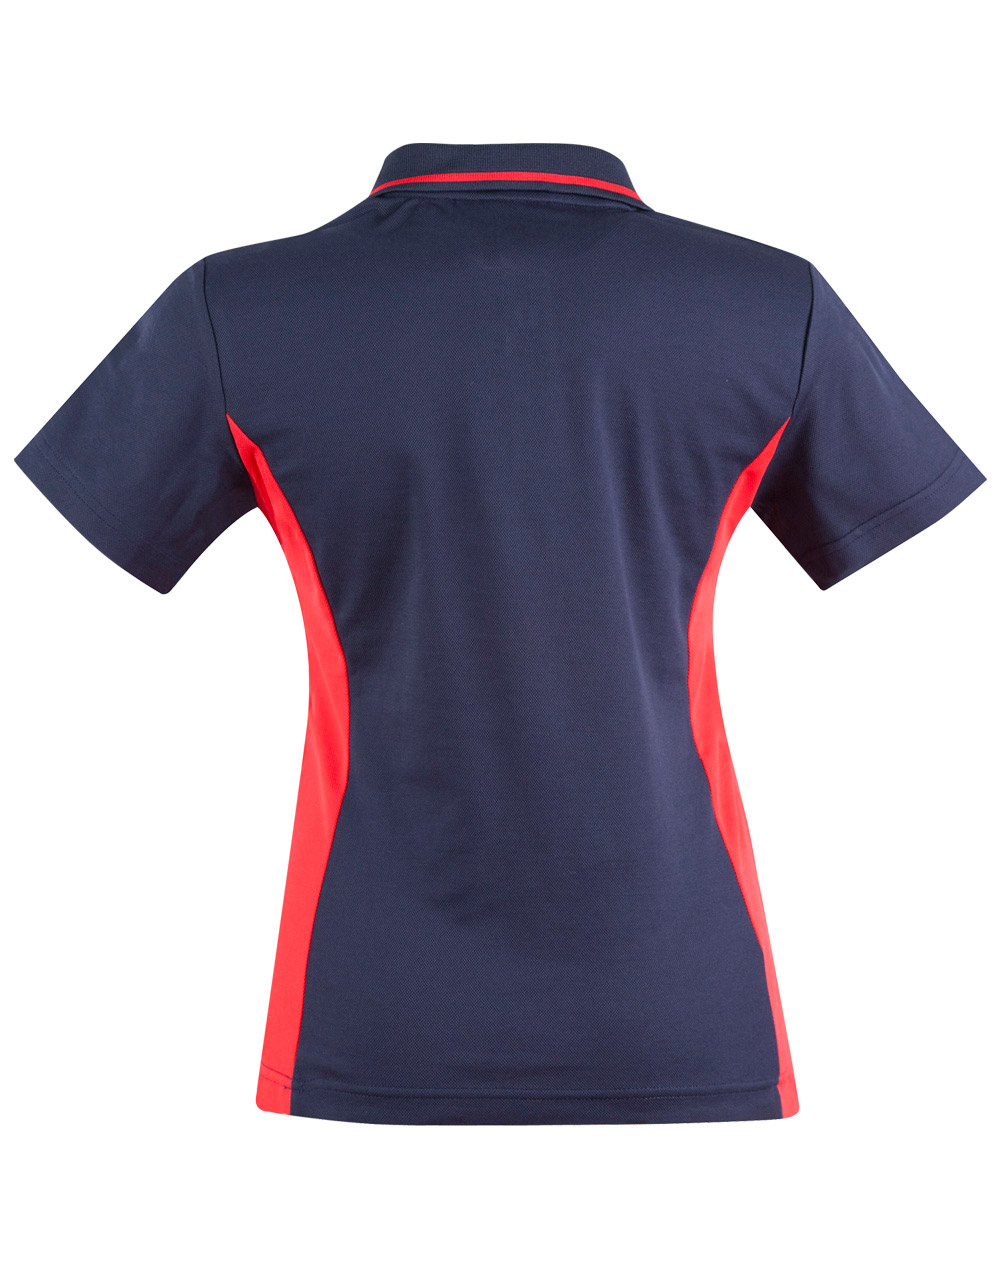 https://s3-ap-southeast-1.amazonaws.com/ws-imgs/POLOSHIRTS/PS74_NavyRed_Back.jpg